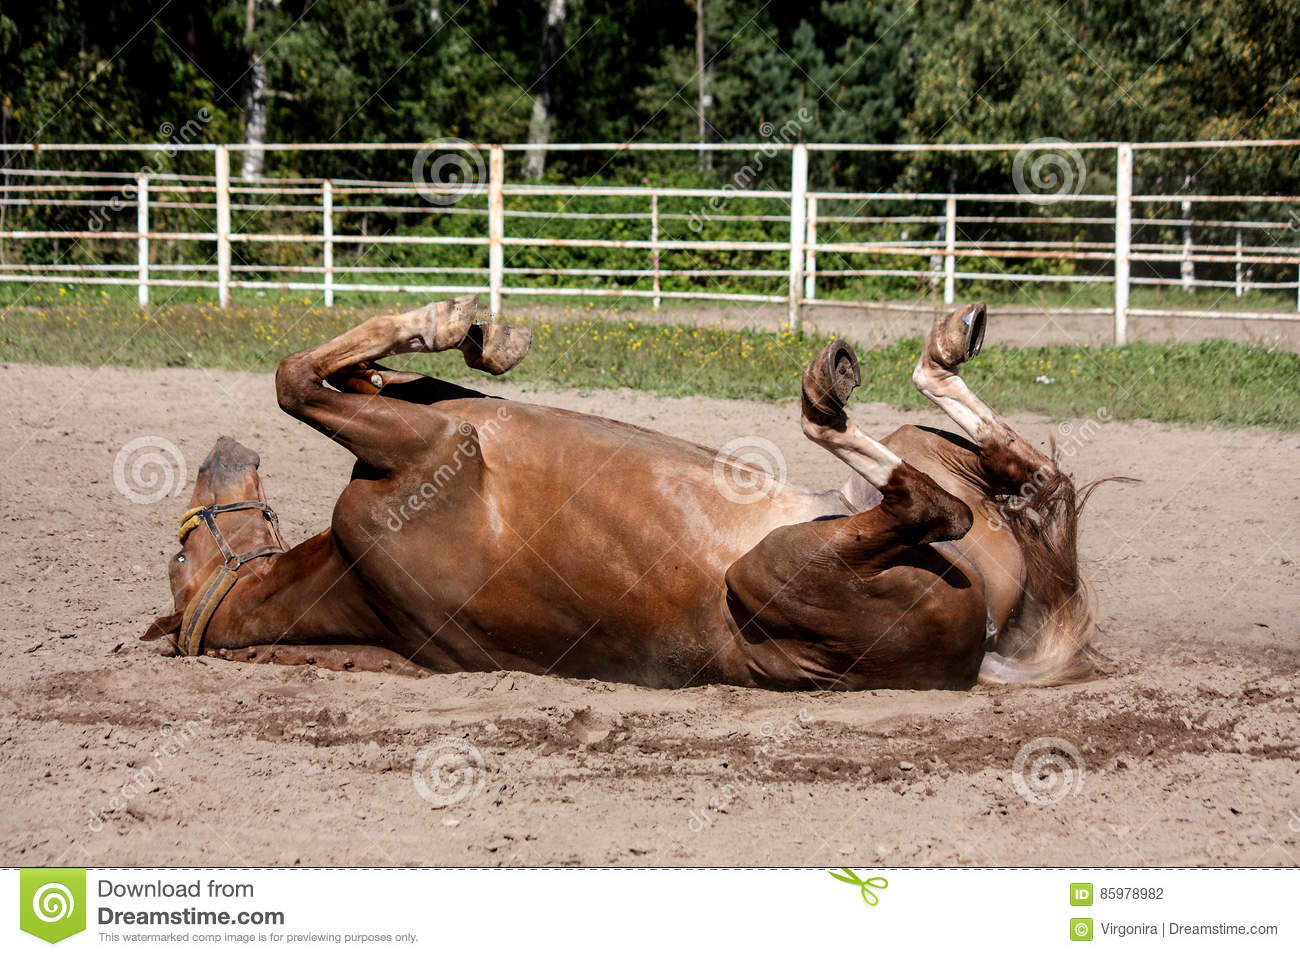 Chestnut horse rolling in the sand